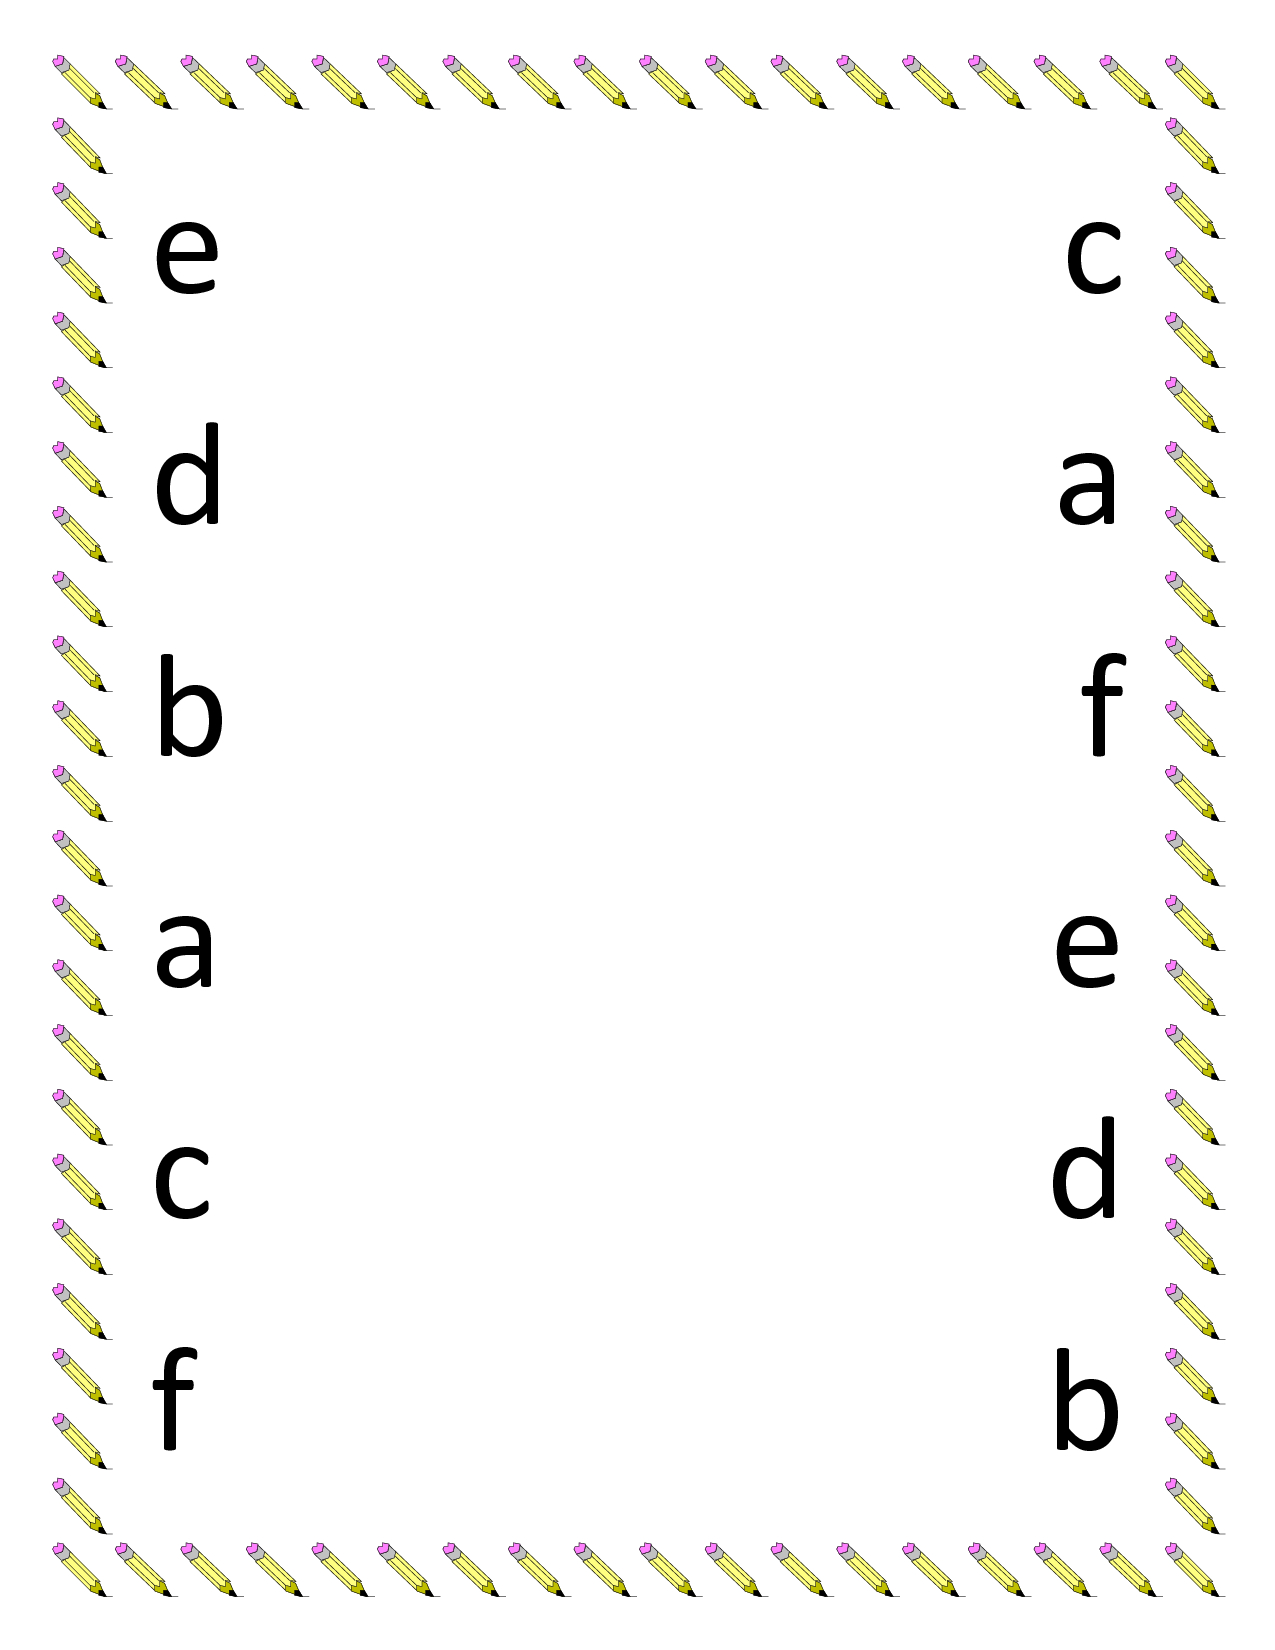 Preschool Science Worksheets Printables | Preschool Matching in Alphabet Matching Worksheets For Kindergarten Pdf